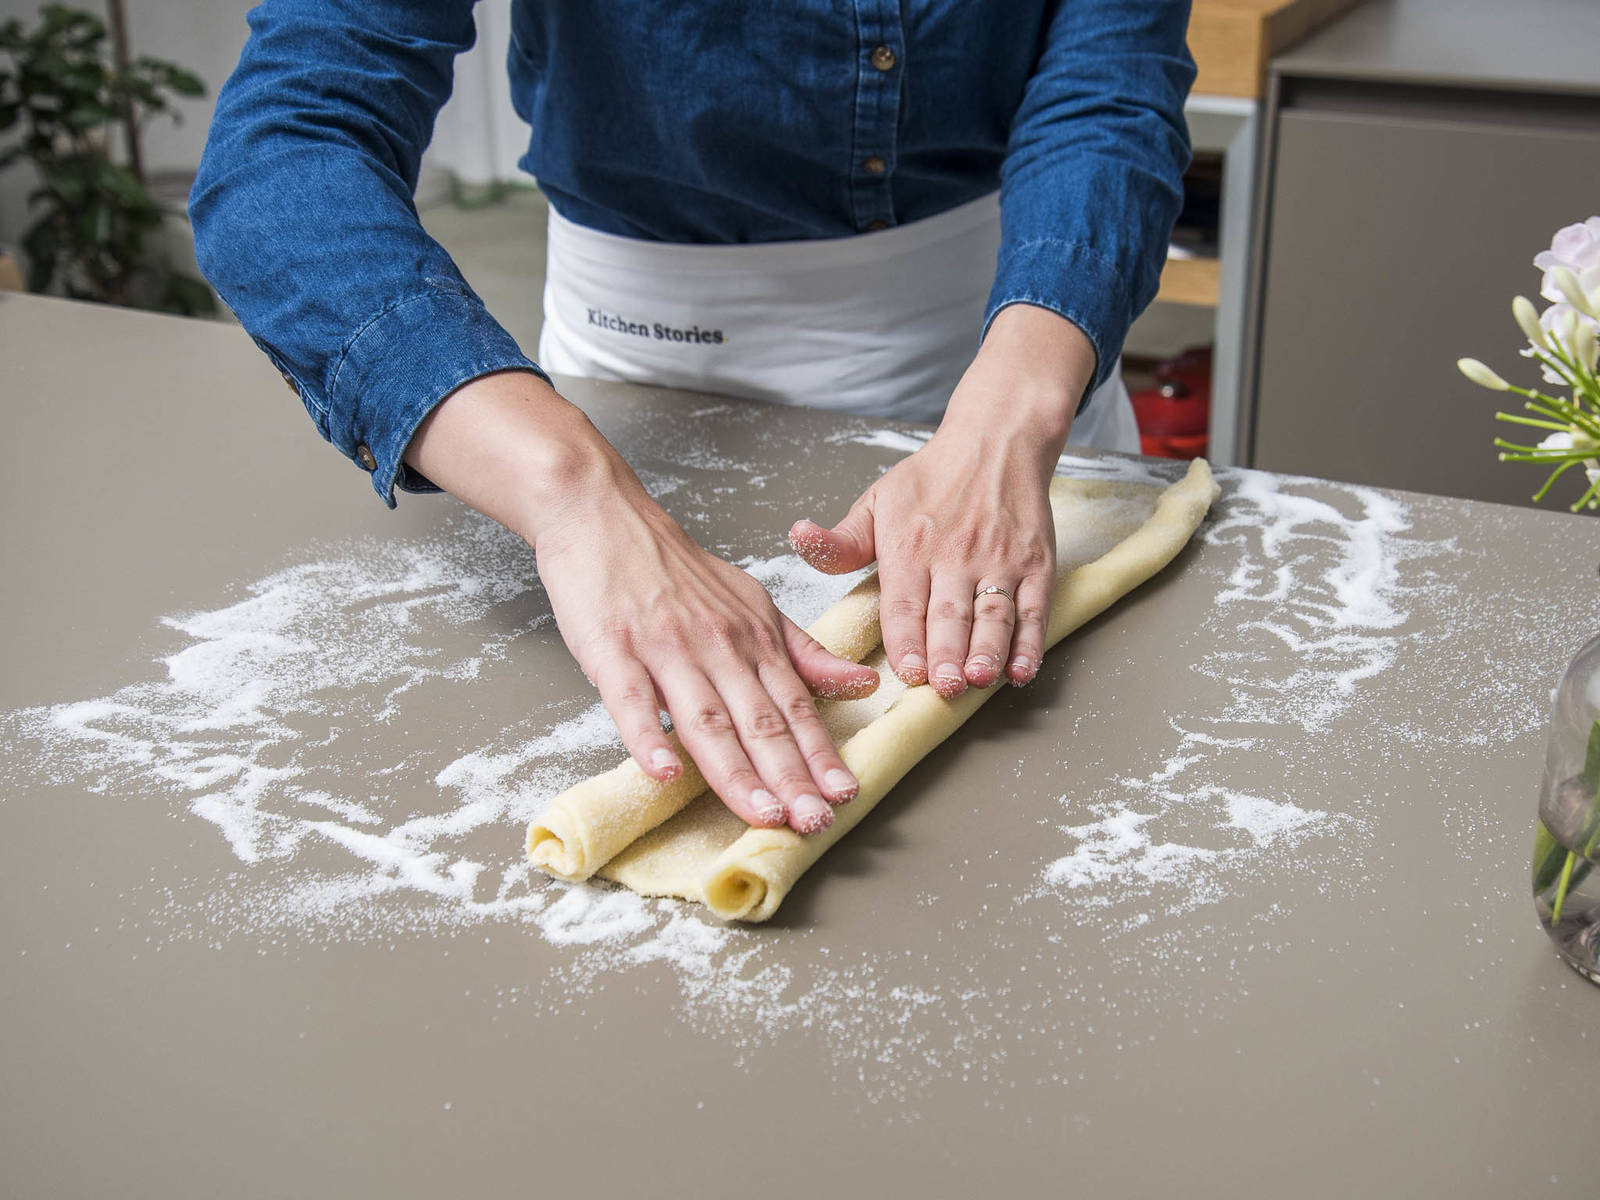 Starting from the long side, roll the dough up tightly like a carpet, stopping halfway. Repeat from the other side so that the two rolls meet. Carefully press the dough together along the seam to seal, then wrap in plastic and chill for approx. 30 min.